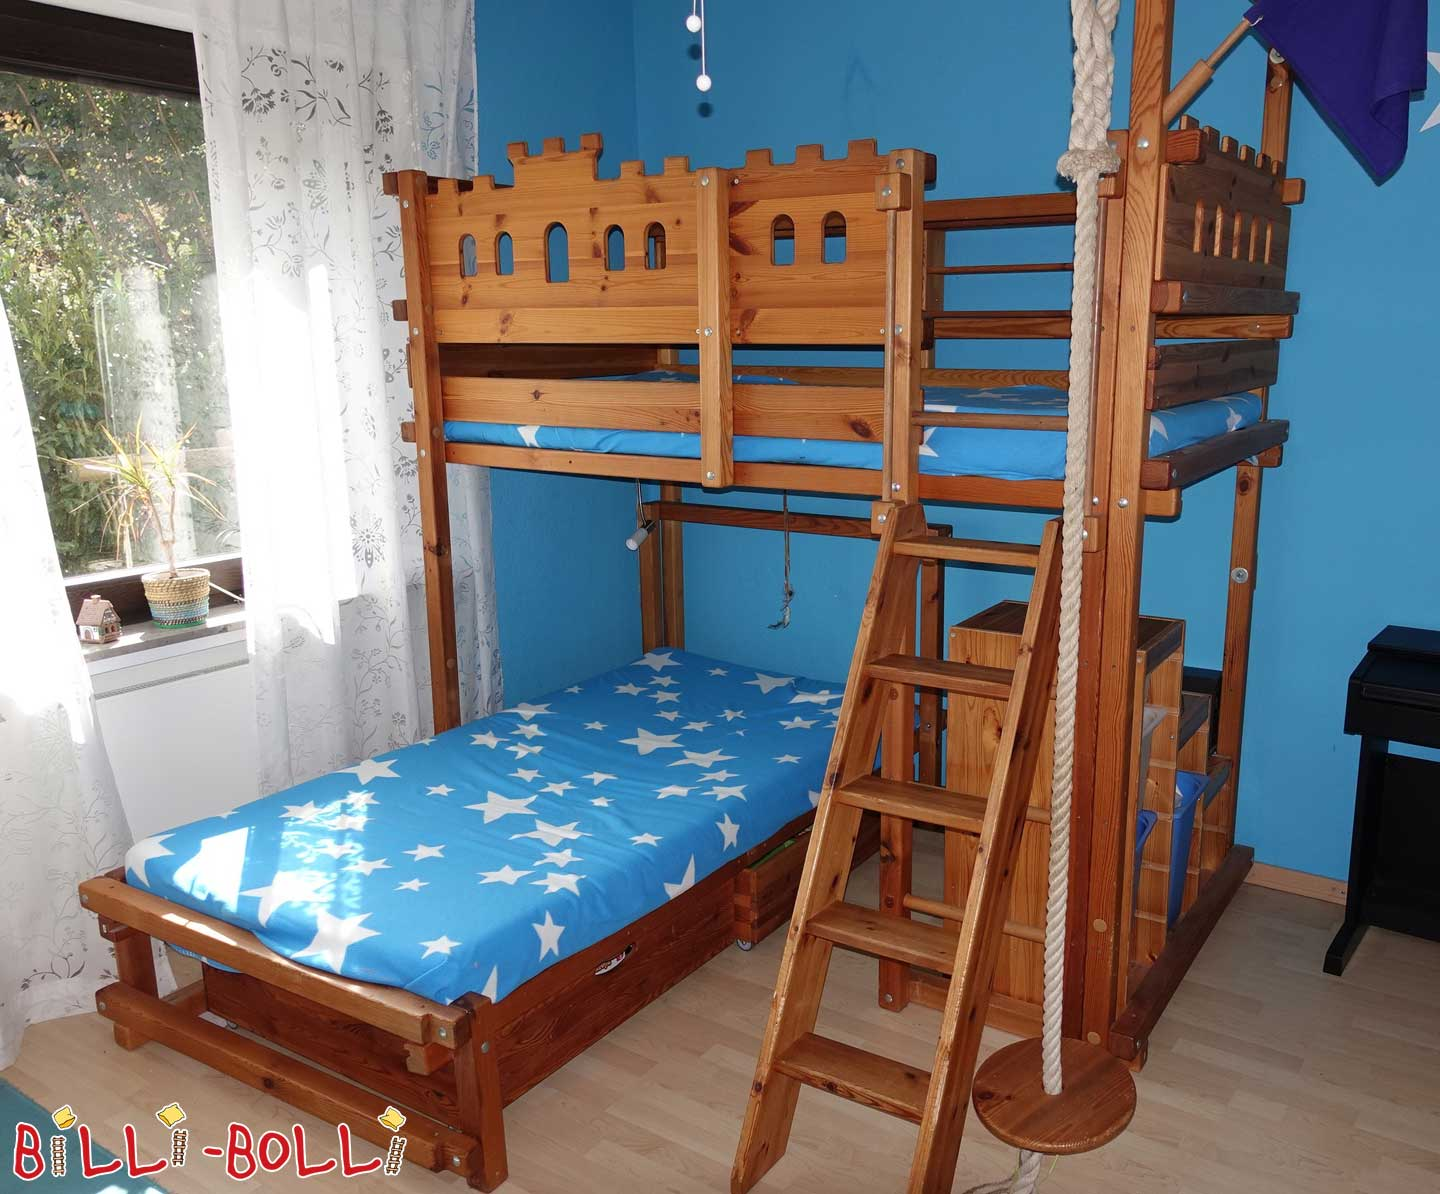 secondhand seite 29 billi bolli kinderm bel. Black Bedroom Furniture Sets. Home Design Ideas